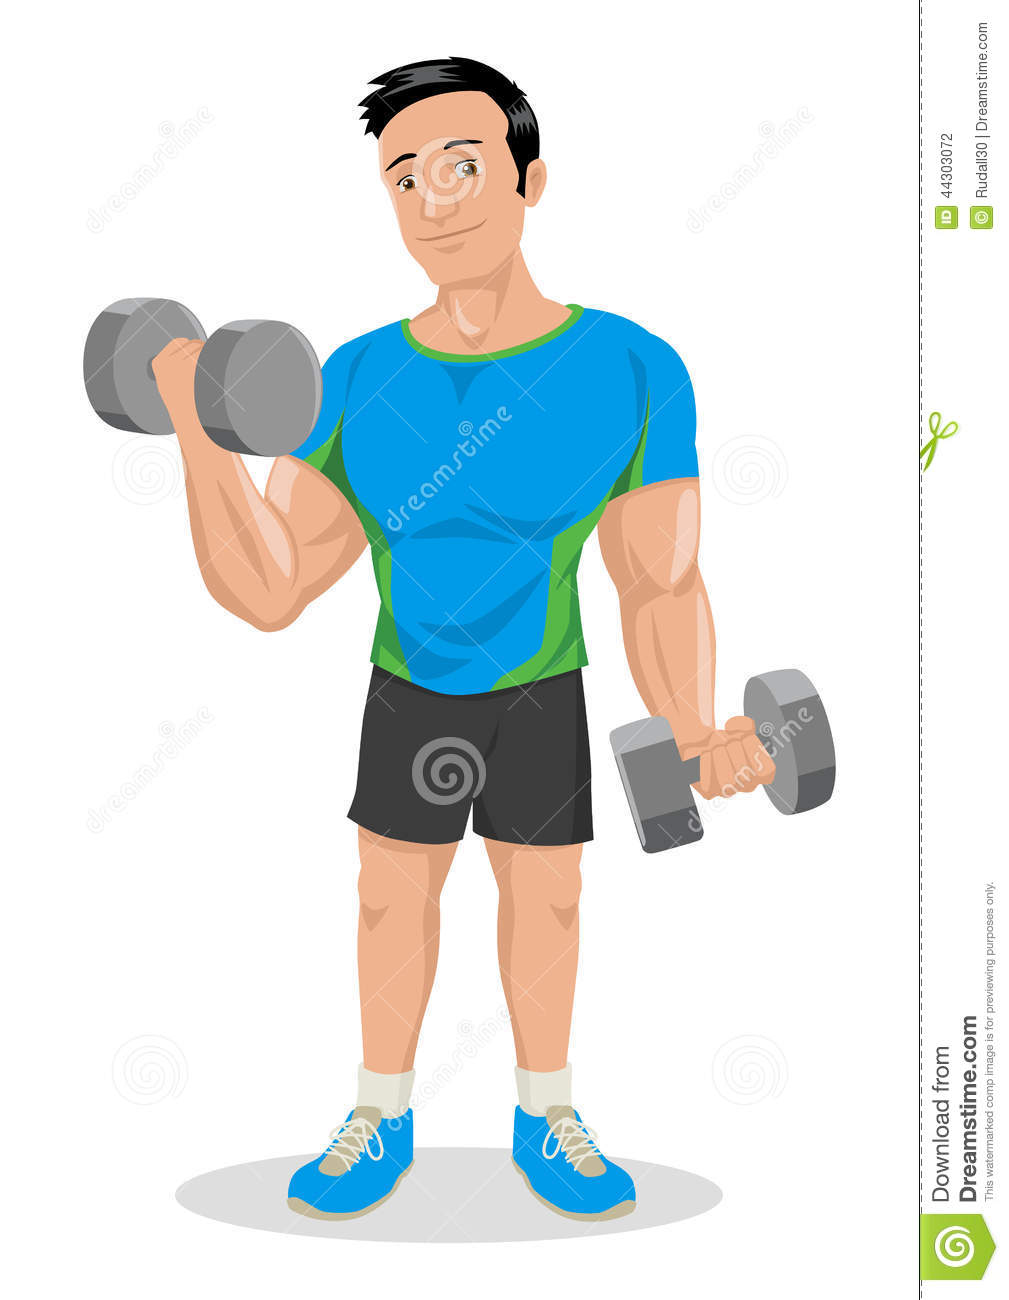 Fitness stock vector. Image of strong, aerobic, build